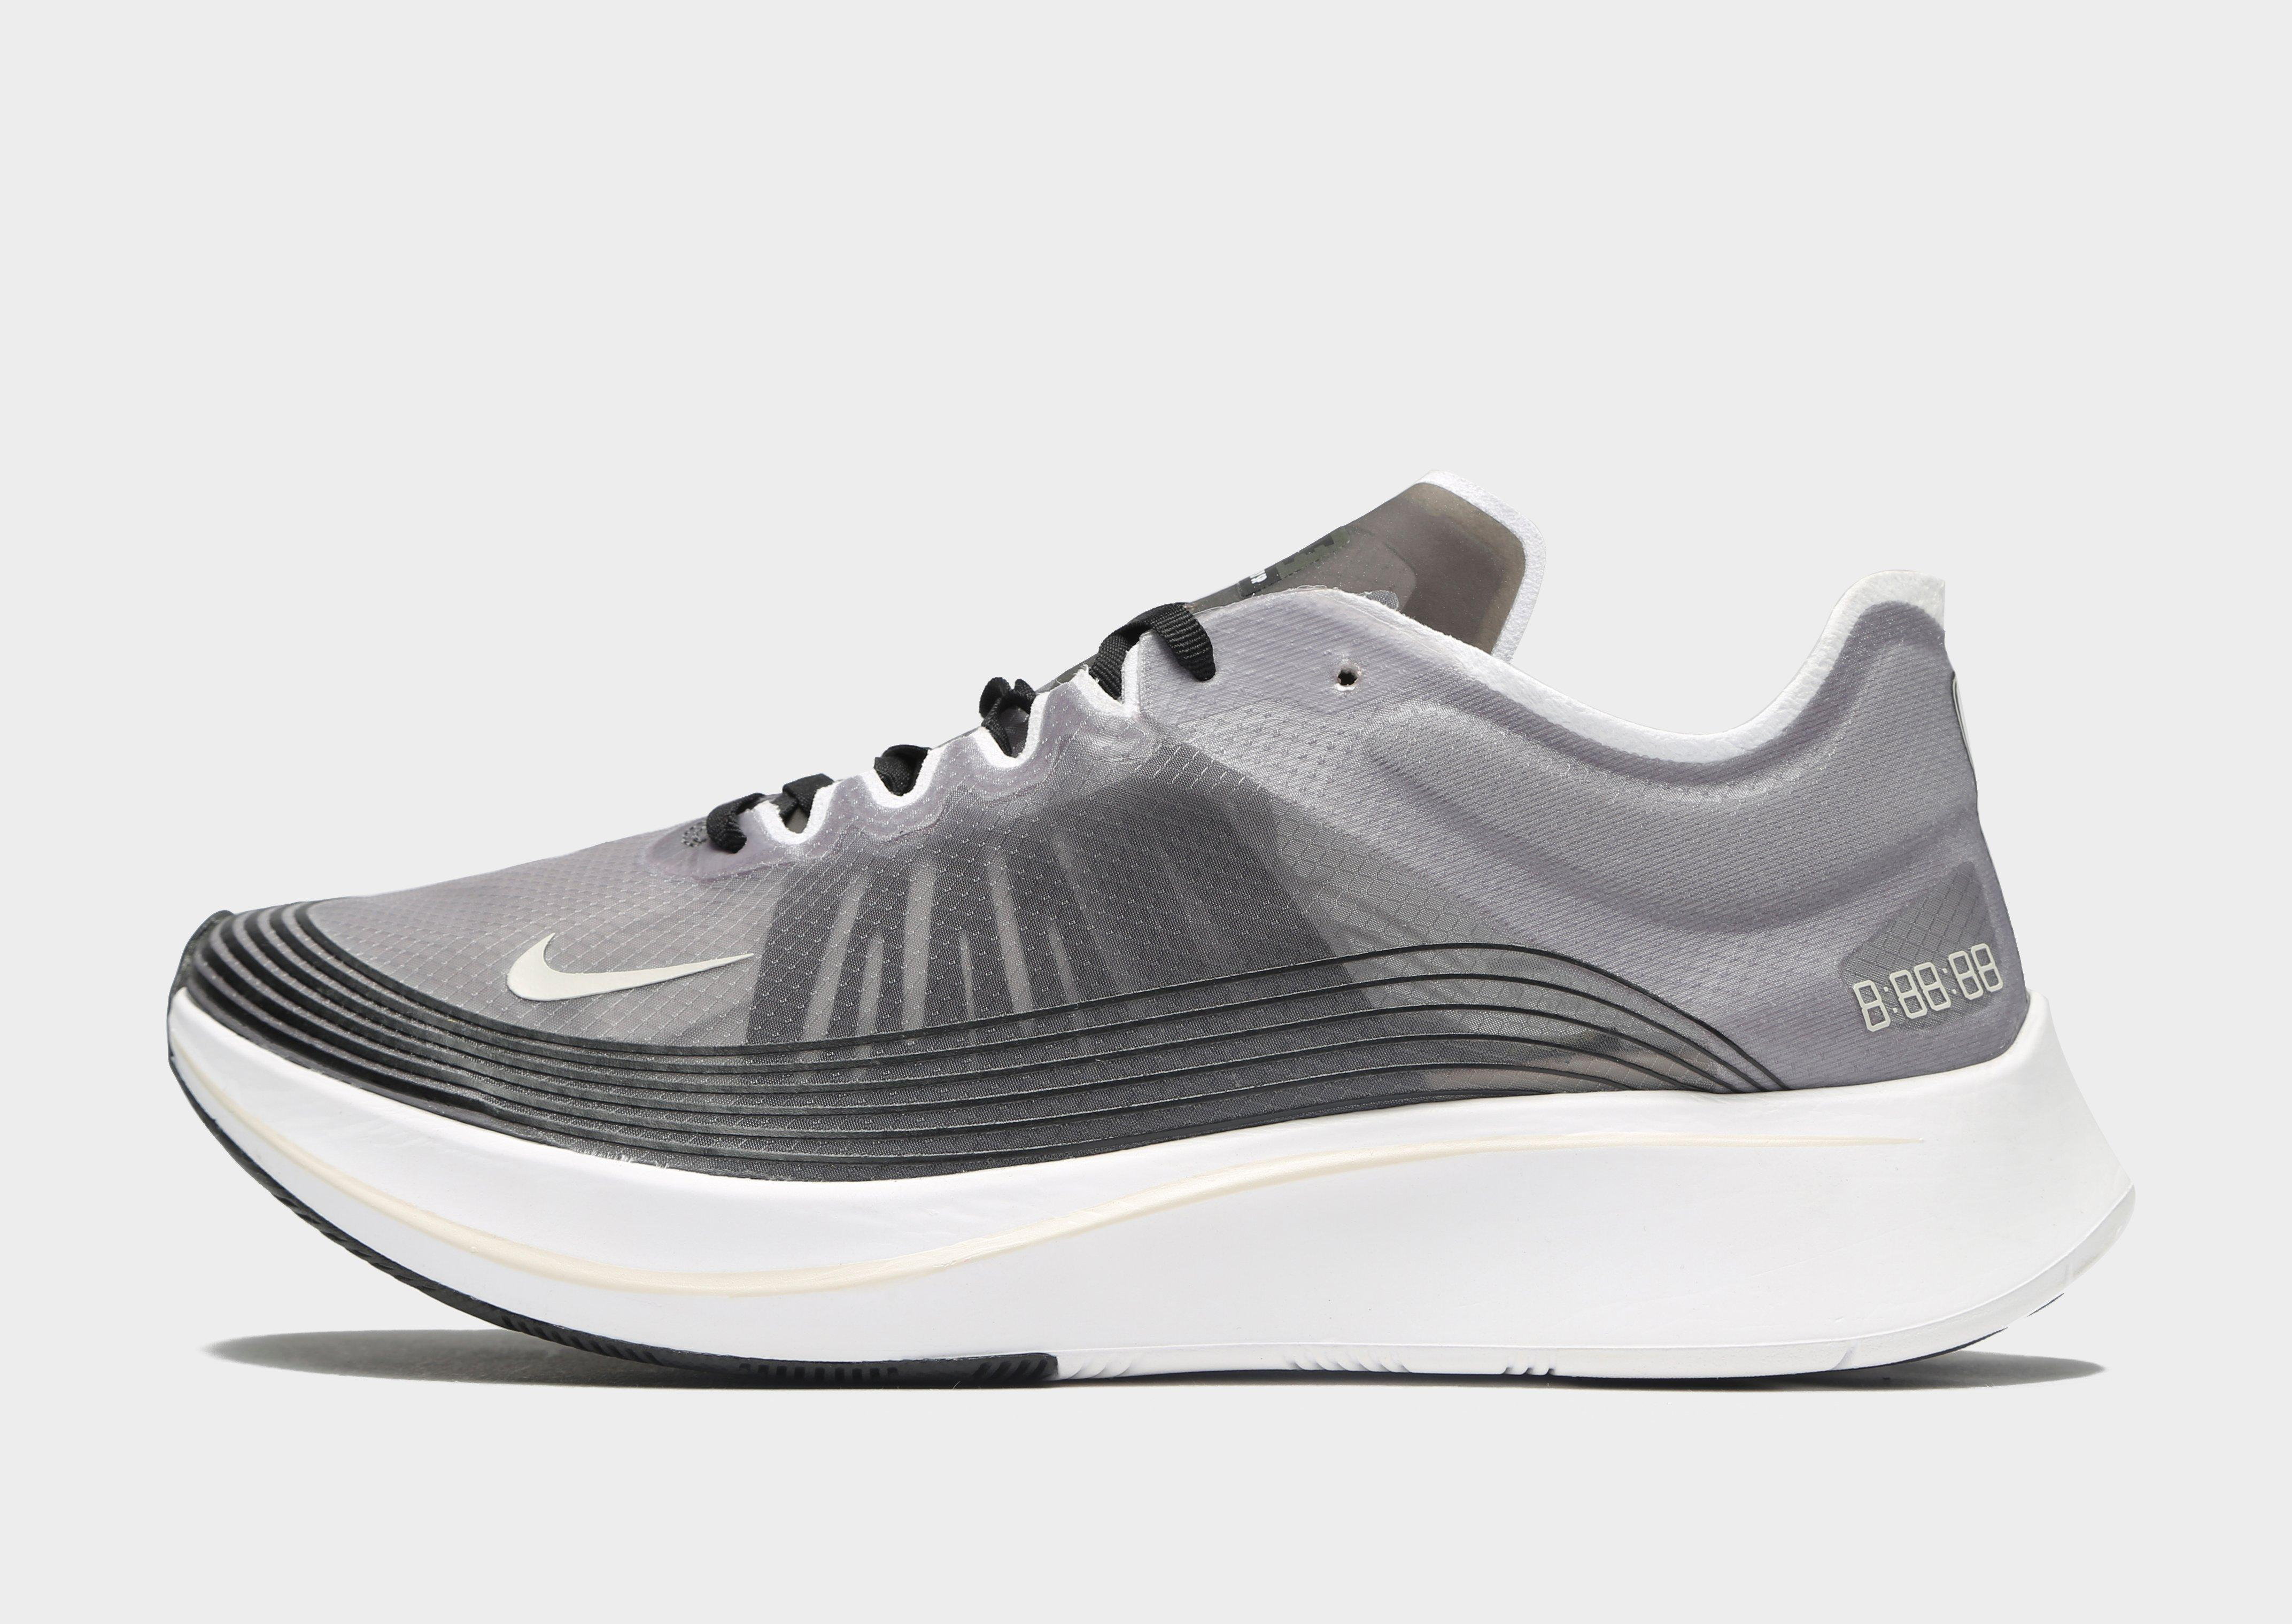 322b2d2a44a4d Lyst - Nike Zoom Fly Sp for Men